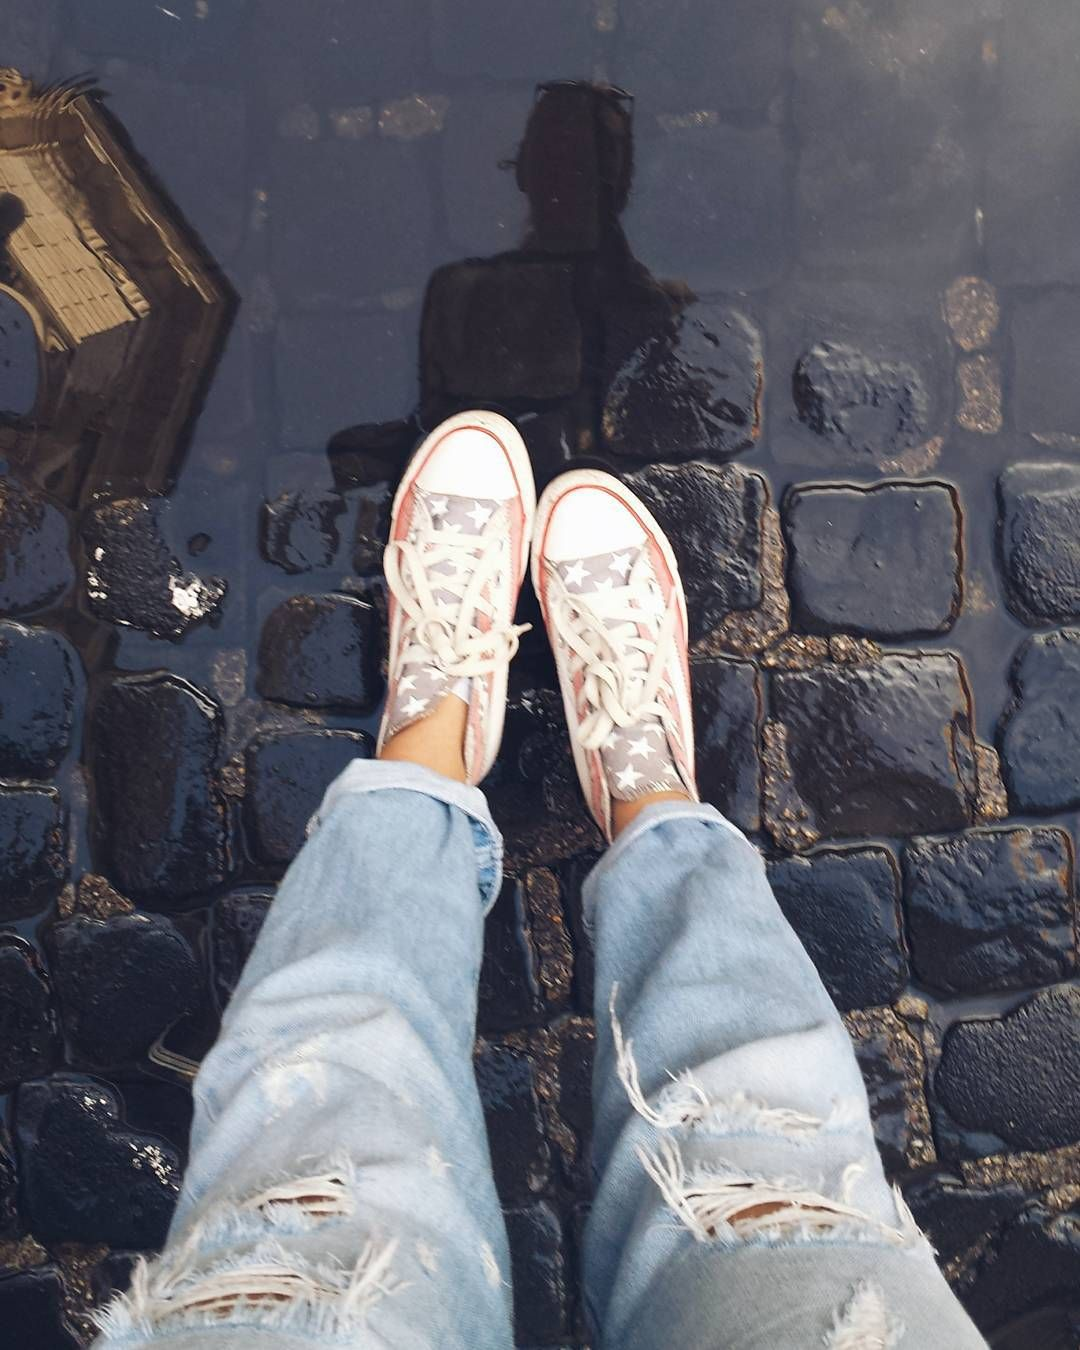 #tourist  in a puddle  #travel #explore #rome #italy by larisa_ngr